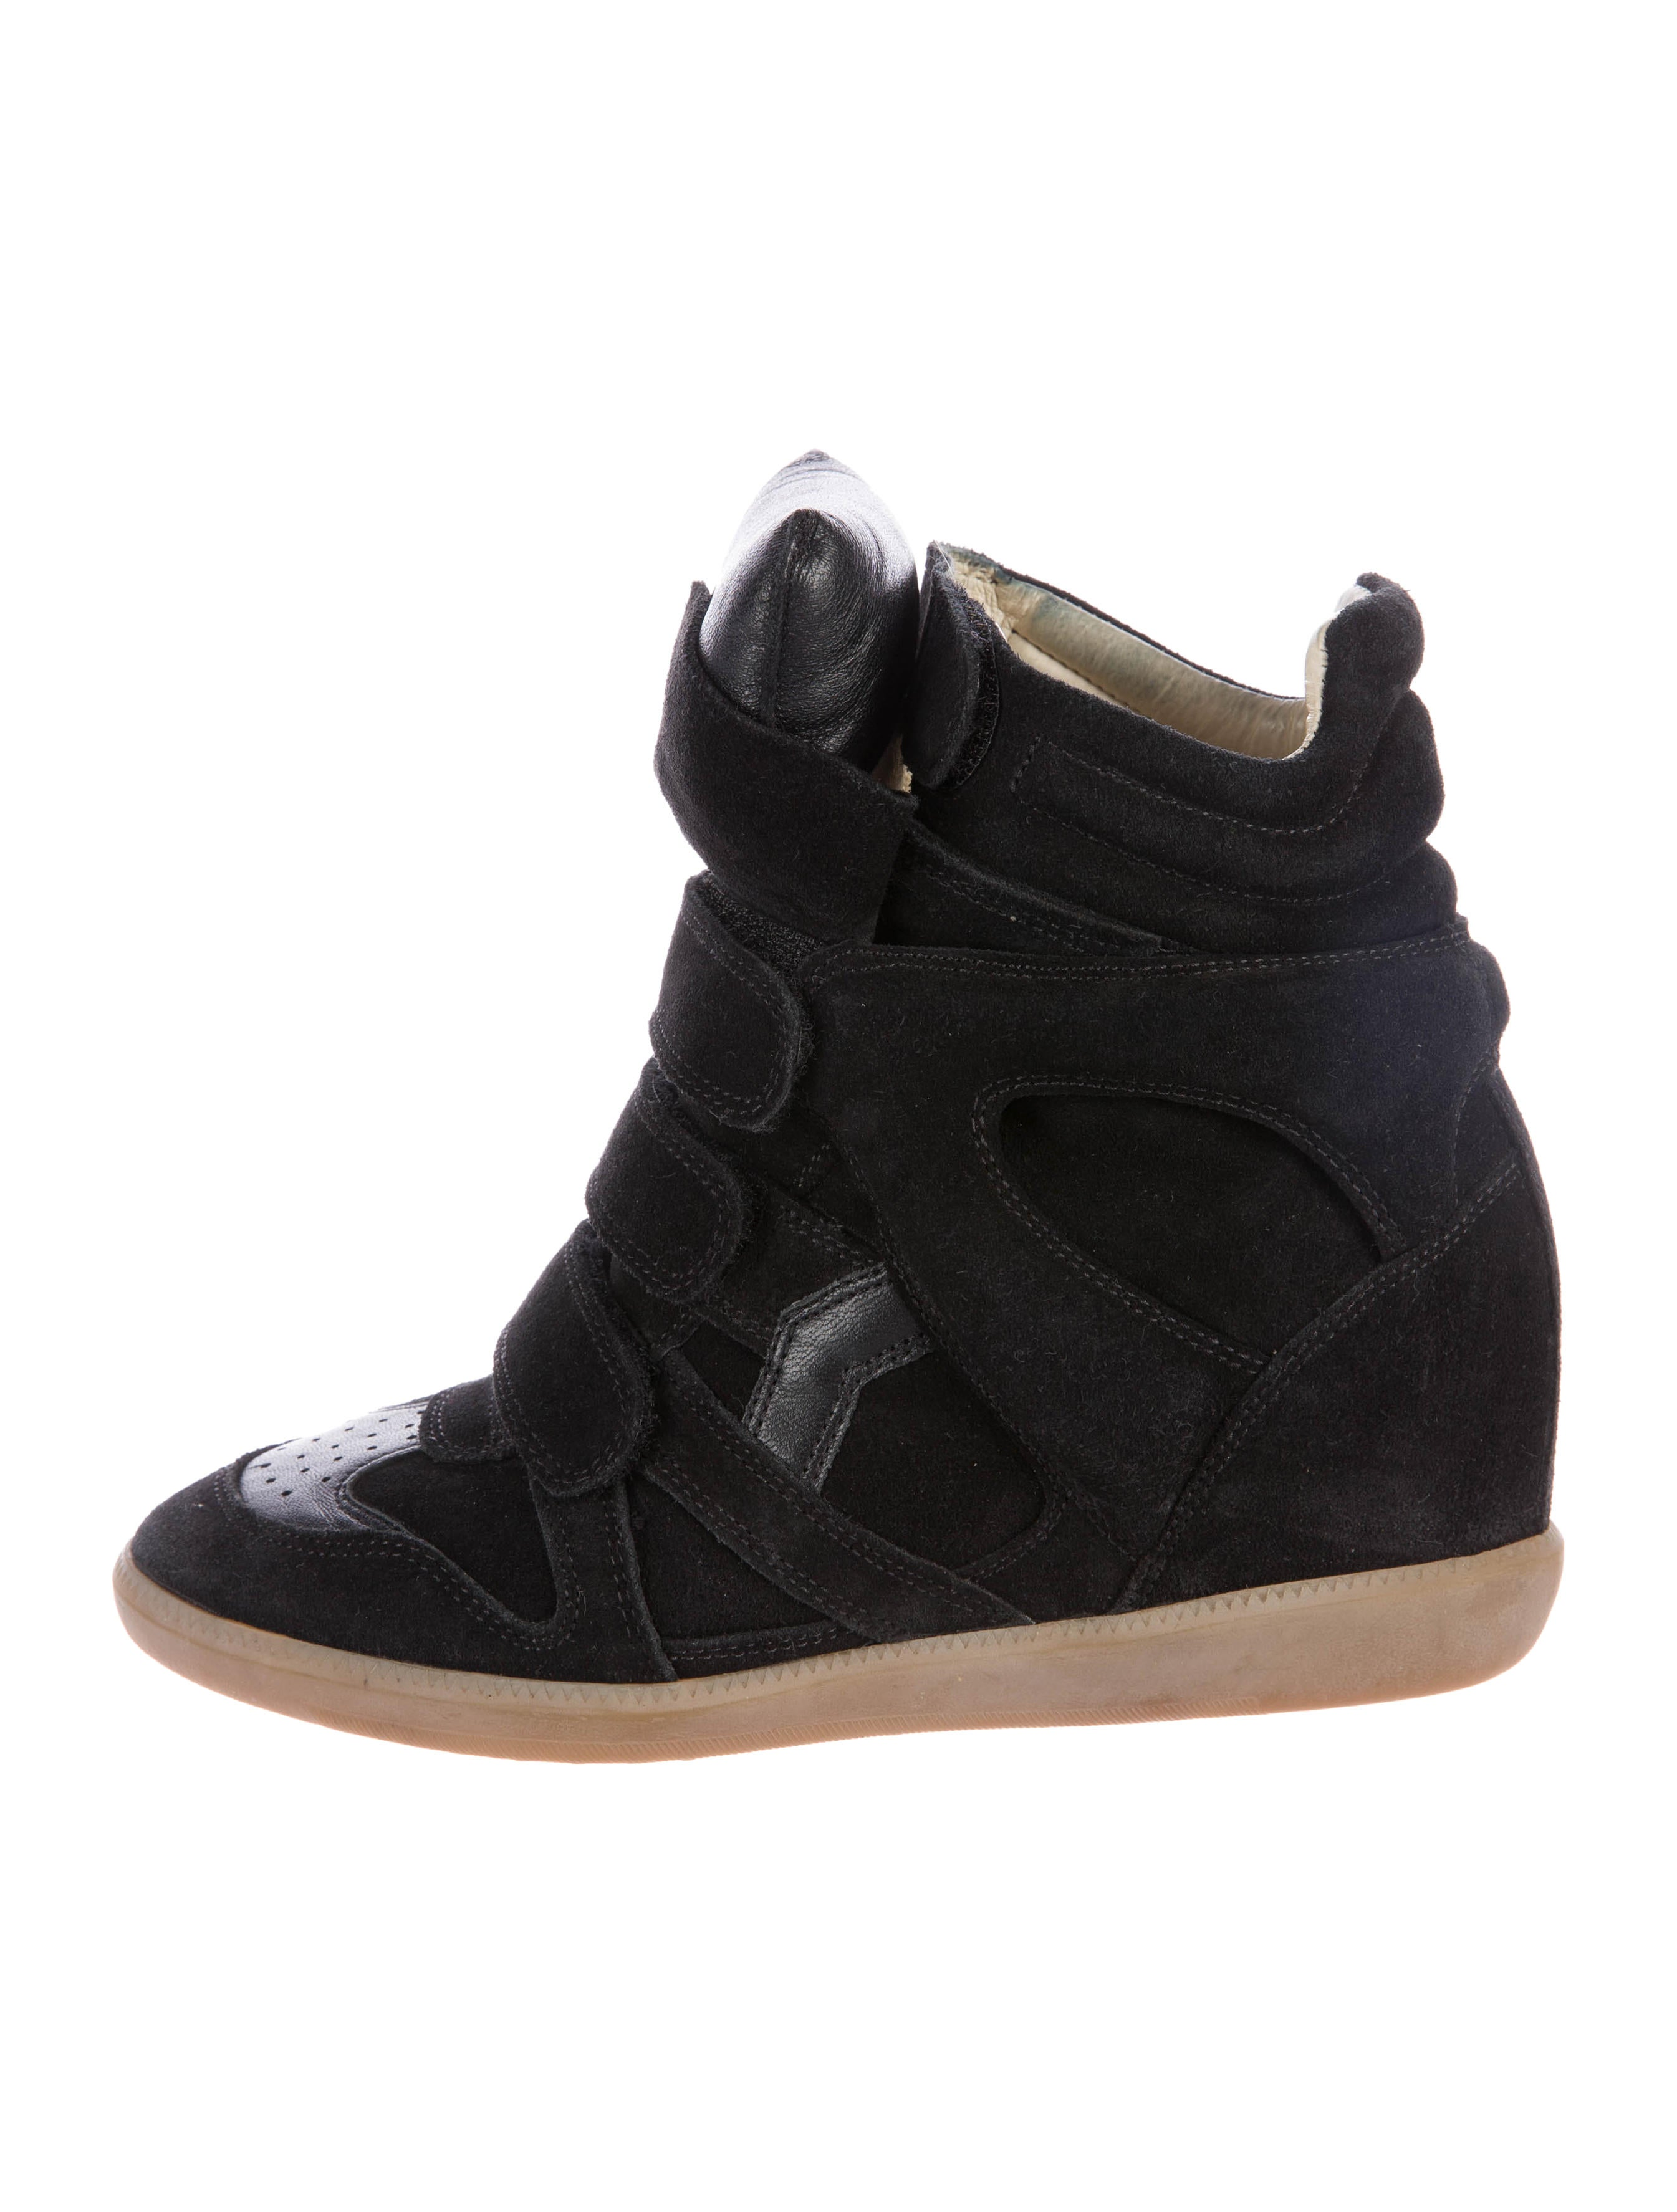 isabel marant beckett wedge sneakers shoes isa42149 the realreal. Black Bedroom Furniture Sets. Home Design Ideas